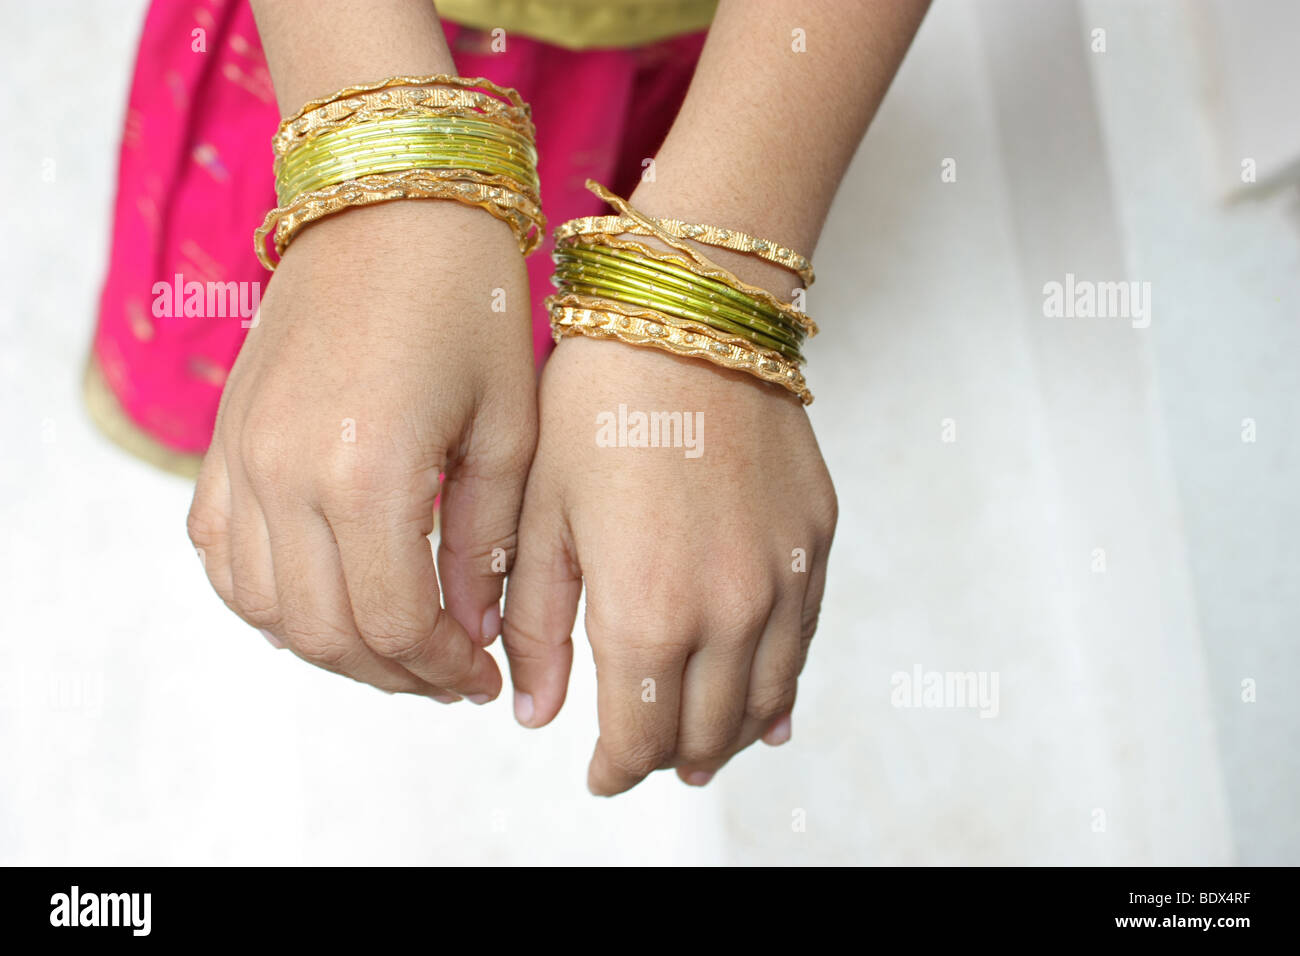 An indian child showing off her fancy bangles in white background - Stock Image